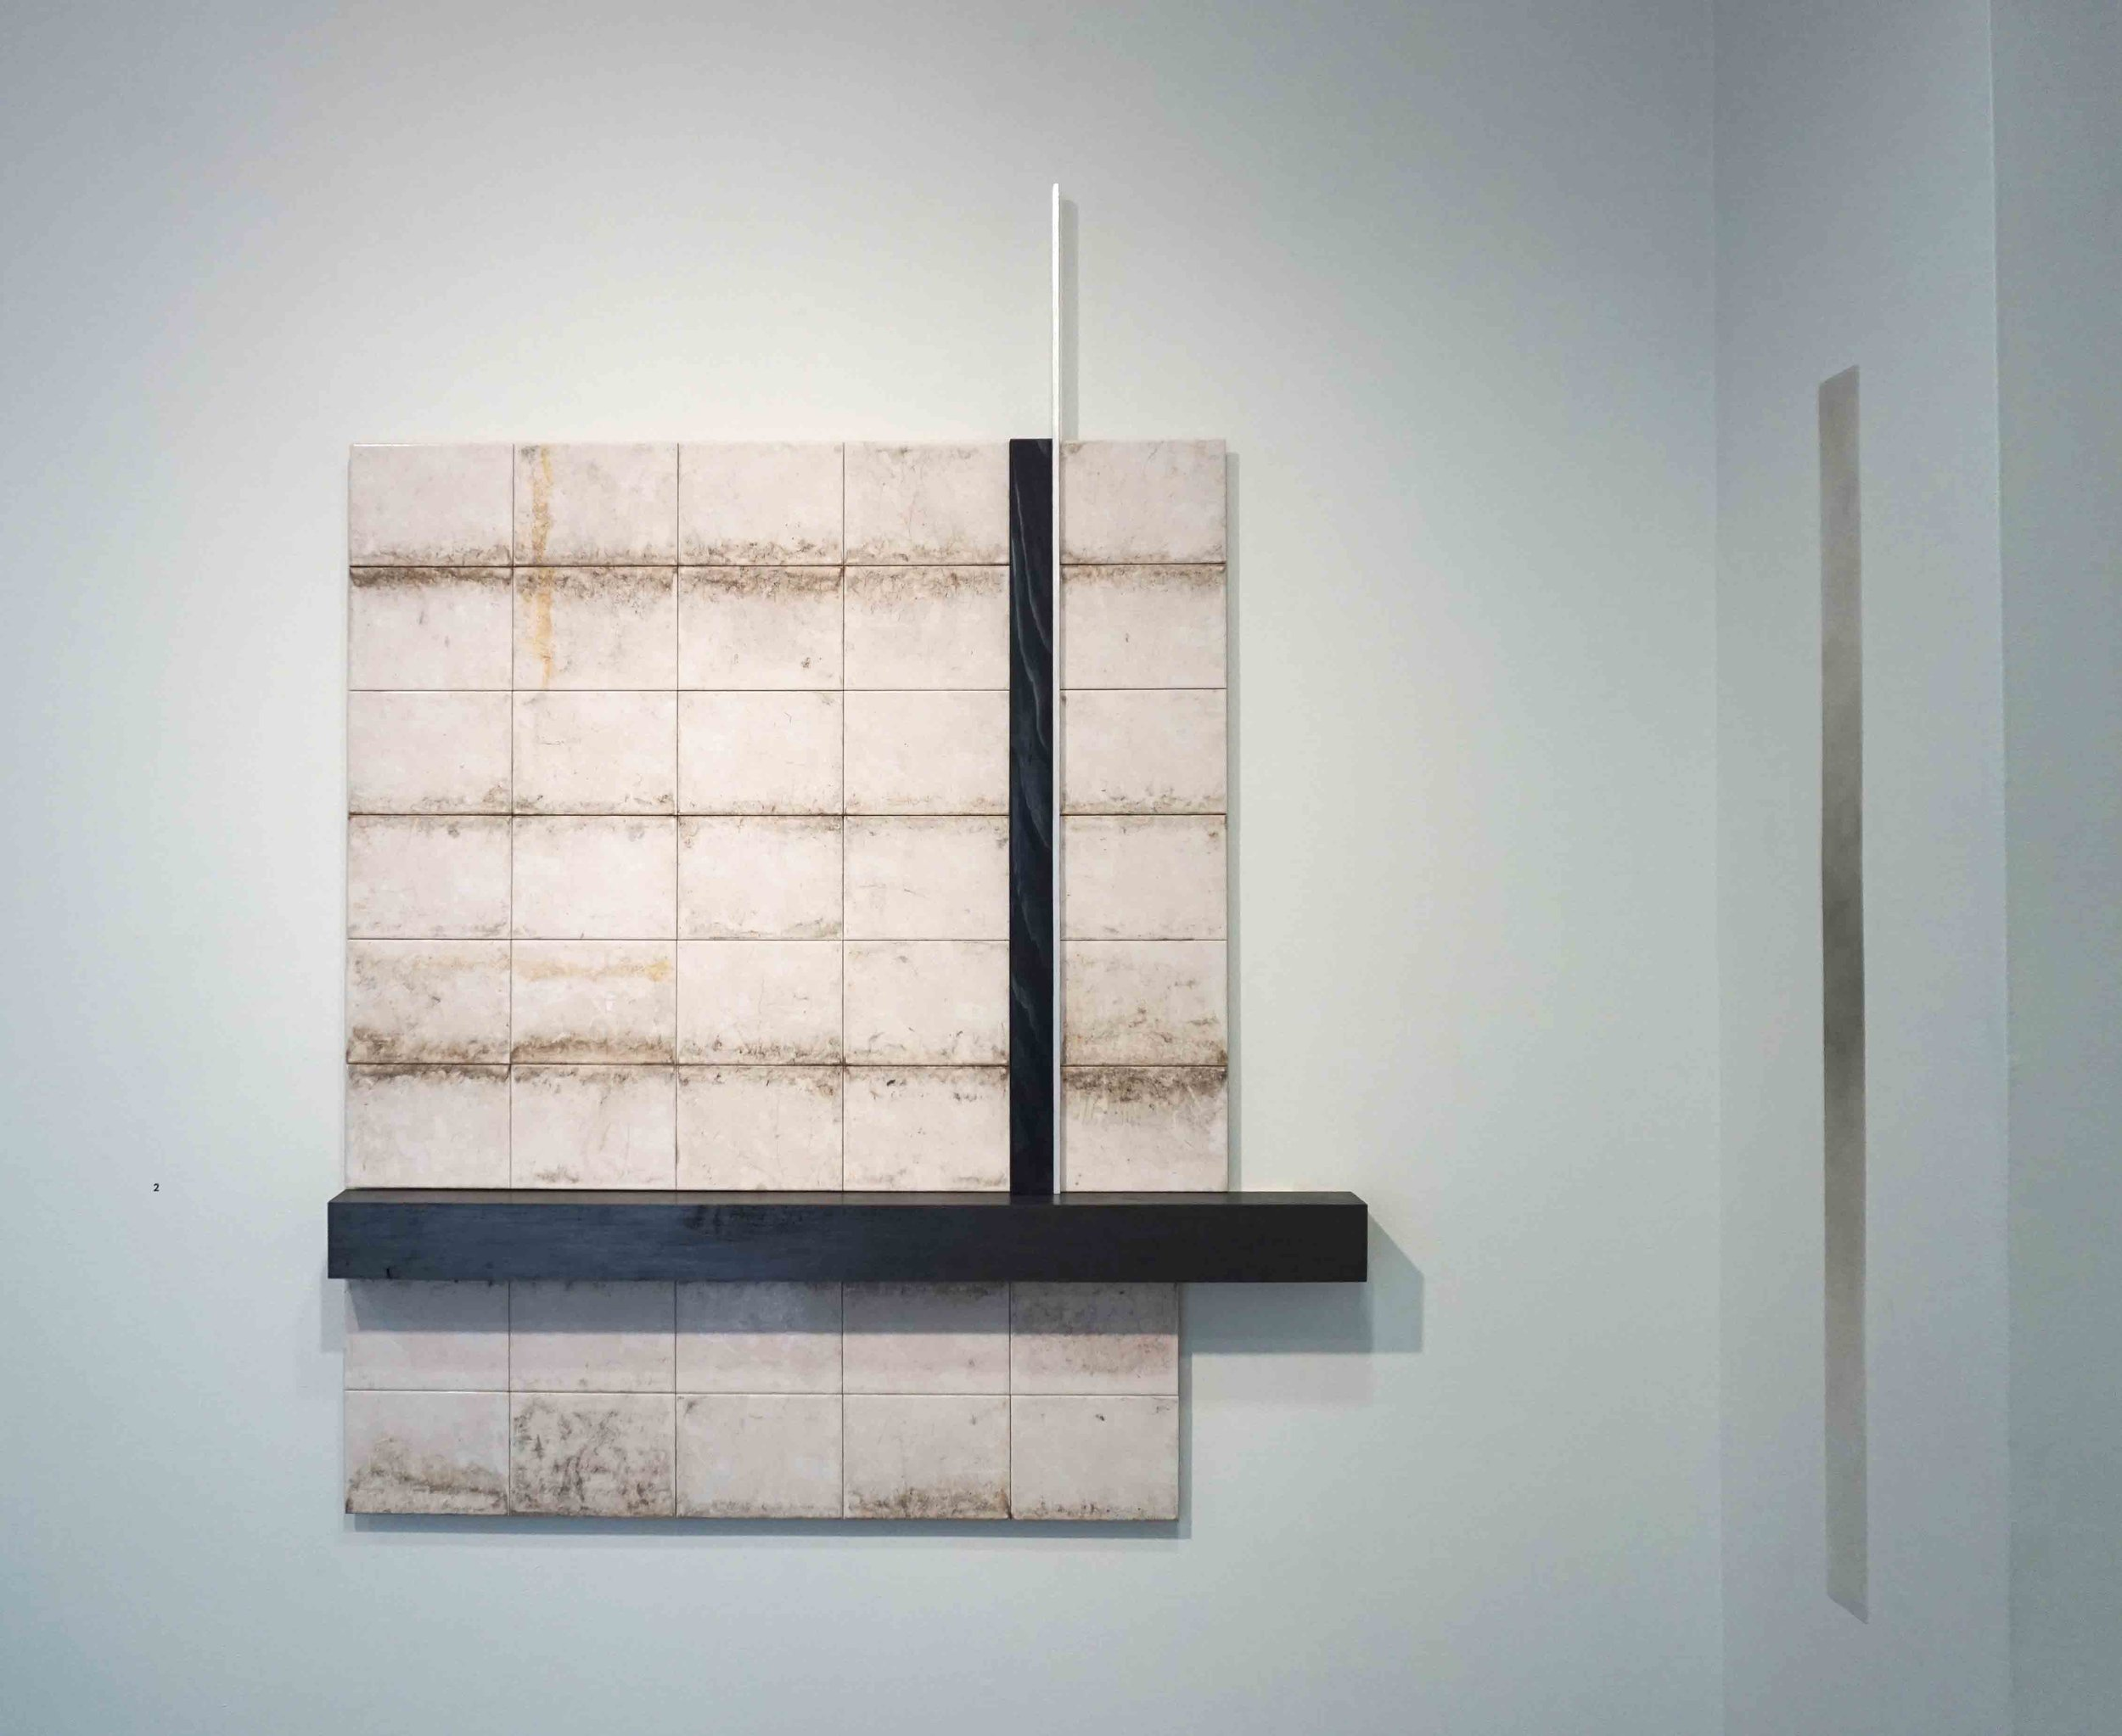 2. Penny Coss and Benjamin Bannan, P arallel States , 2019, ceramic tiles, wood, mica powder, graphite powder, ash and indigo pigment on aluminium, 130 x 120 cm $1,800